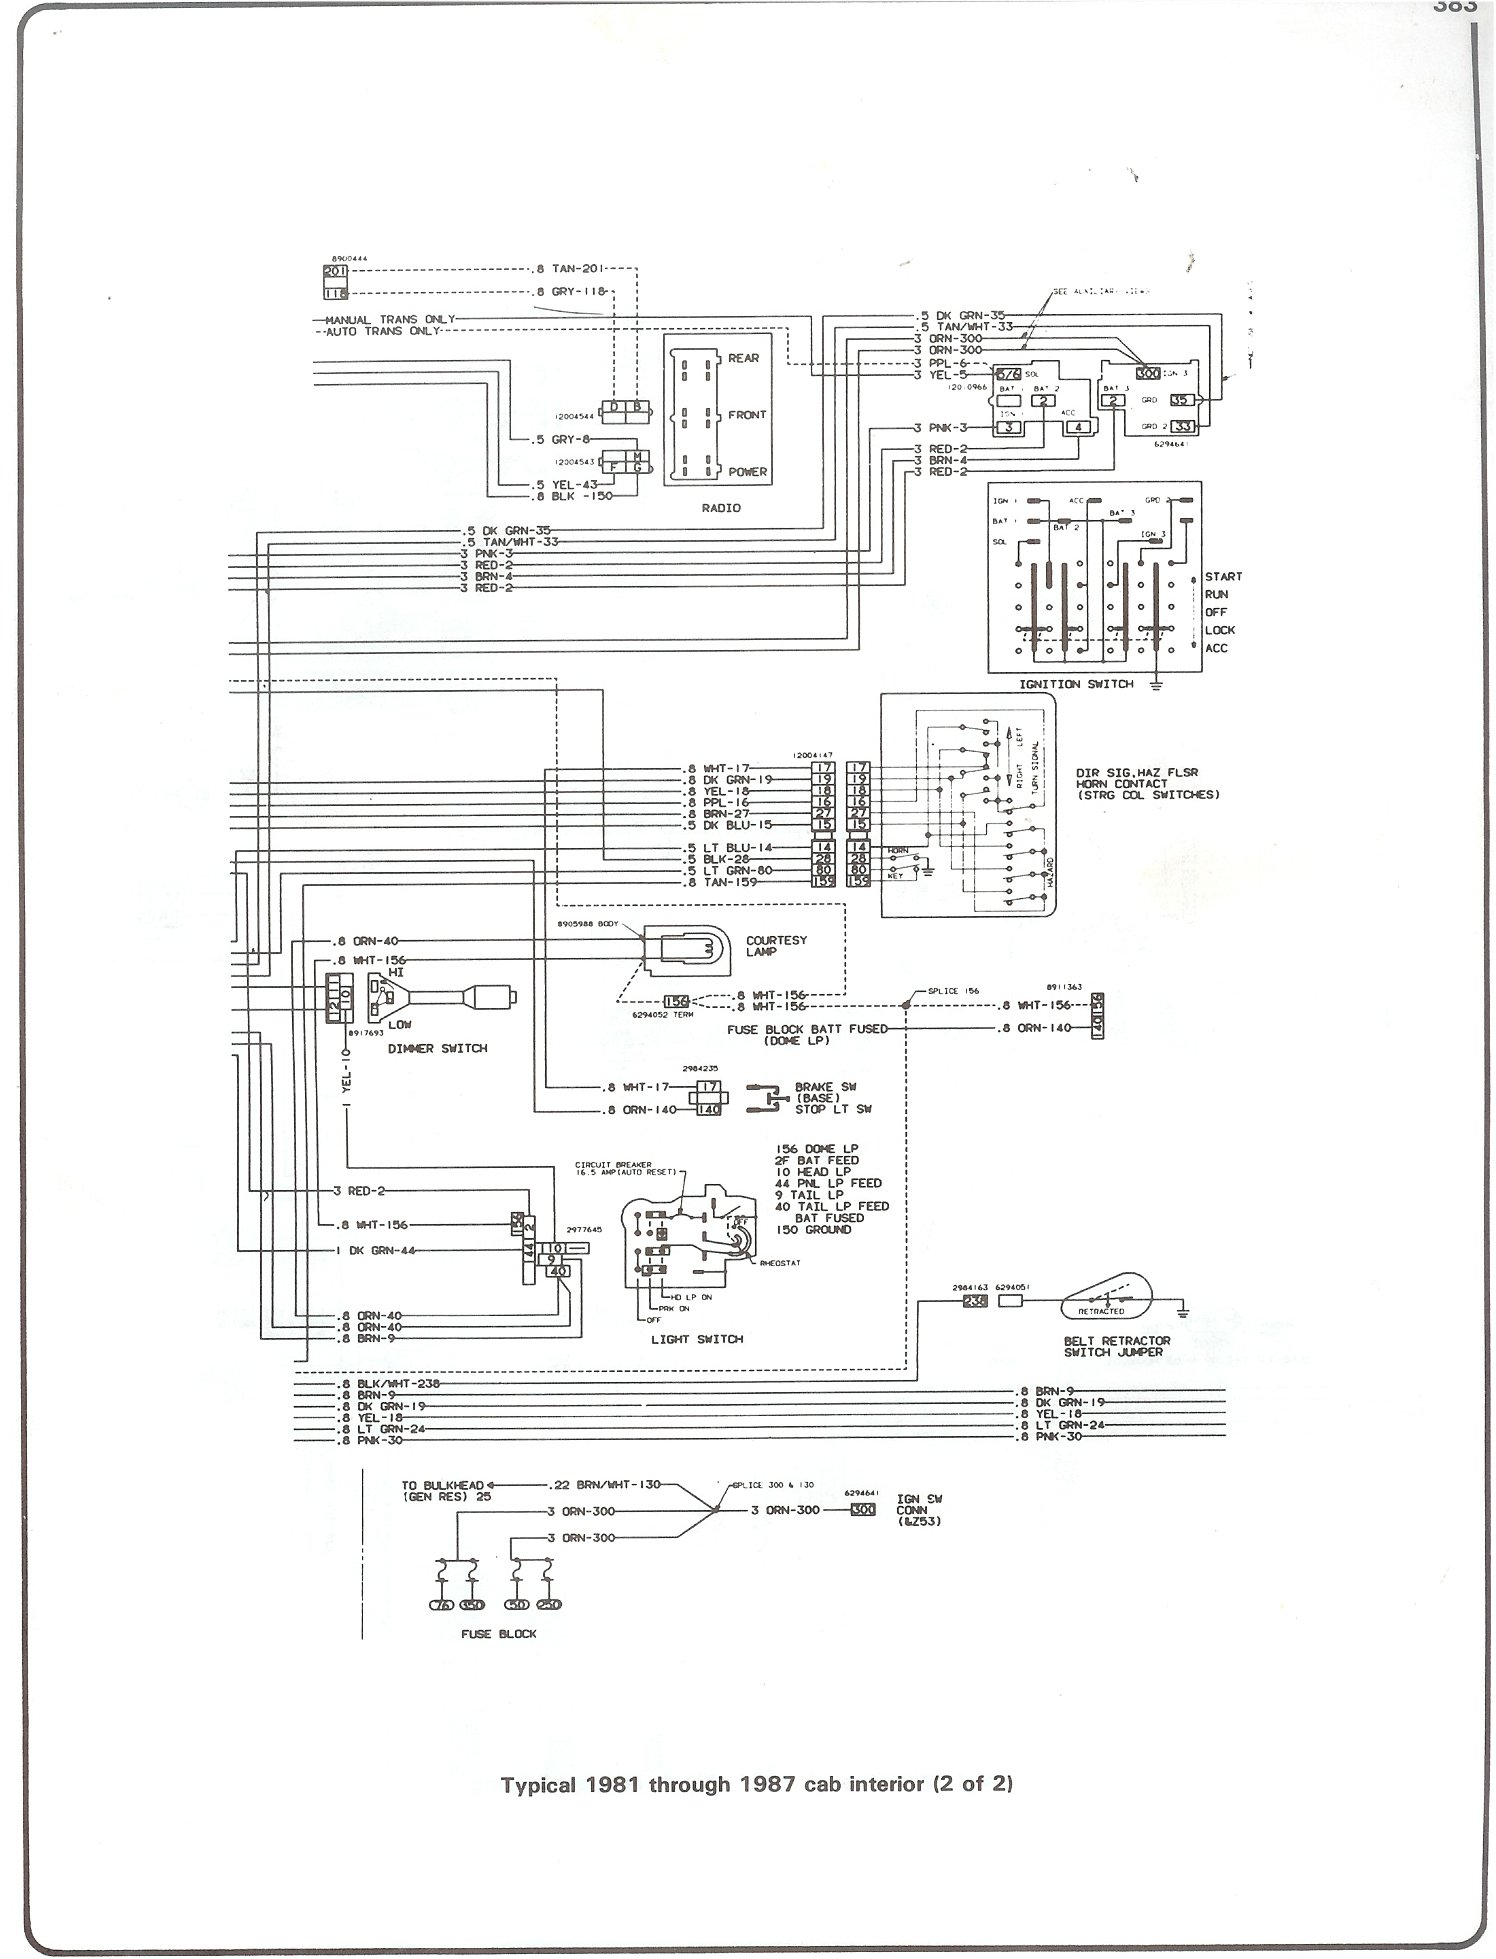 complete 73 87 wiring diagrams rh forum 73 87chevytrucks com 1987 chevy silverado wiring diagram 1987 chevy truck wiring diagram pdf